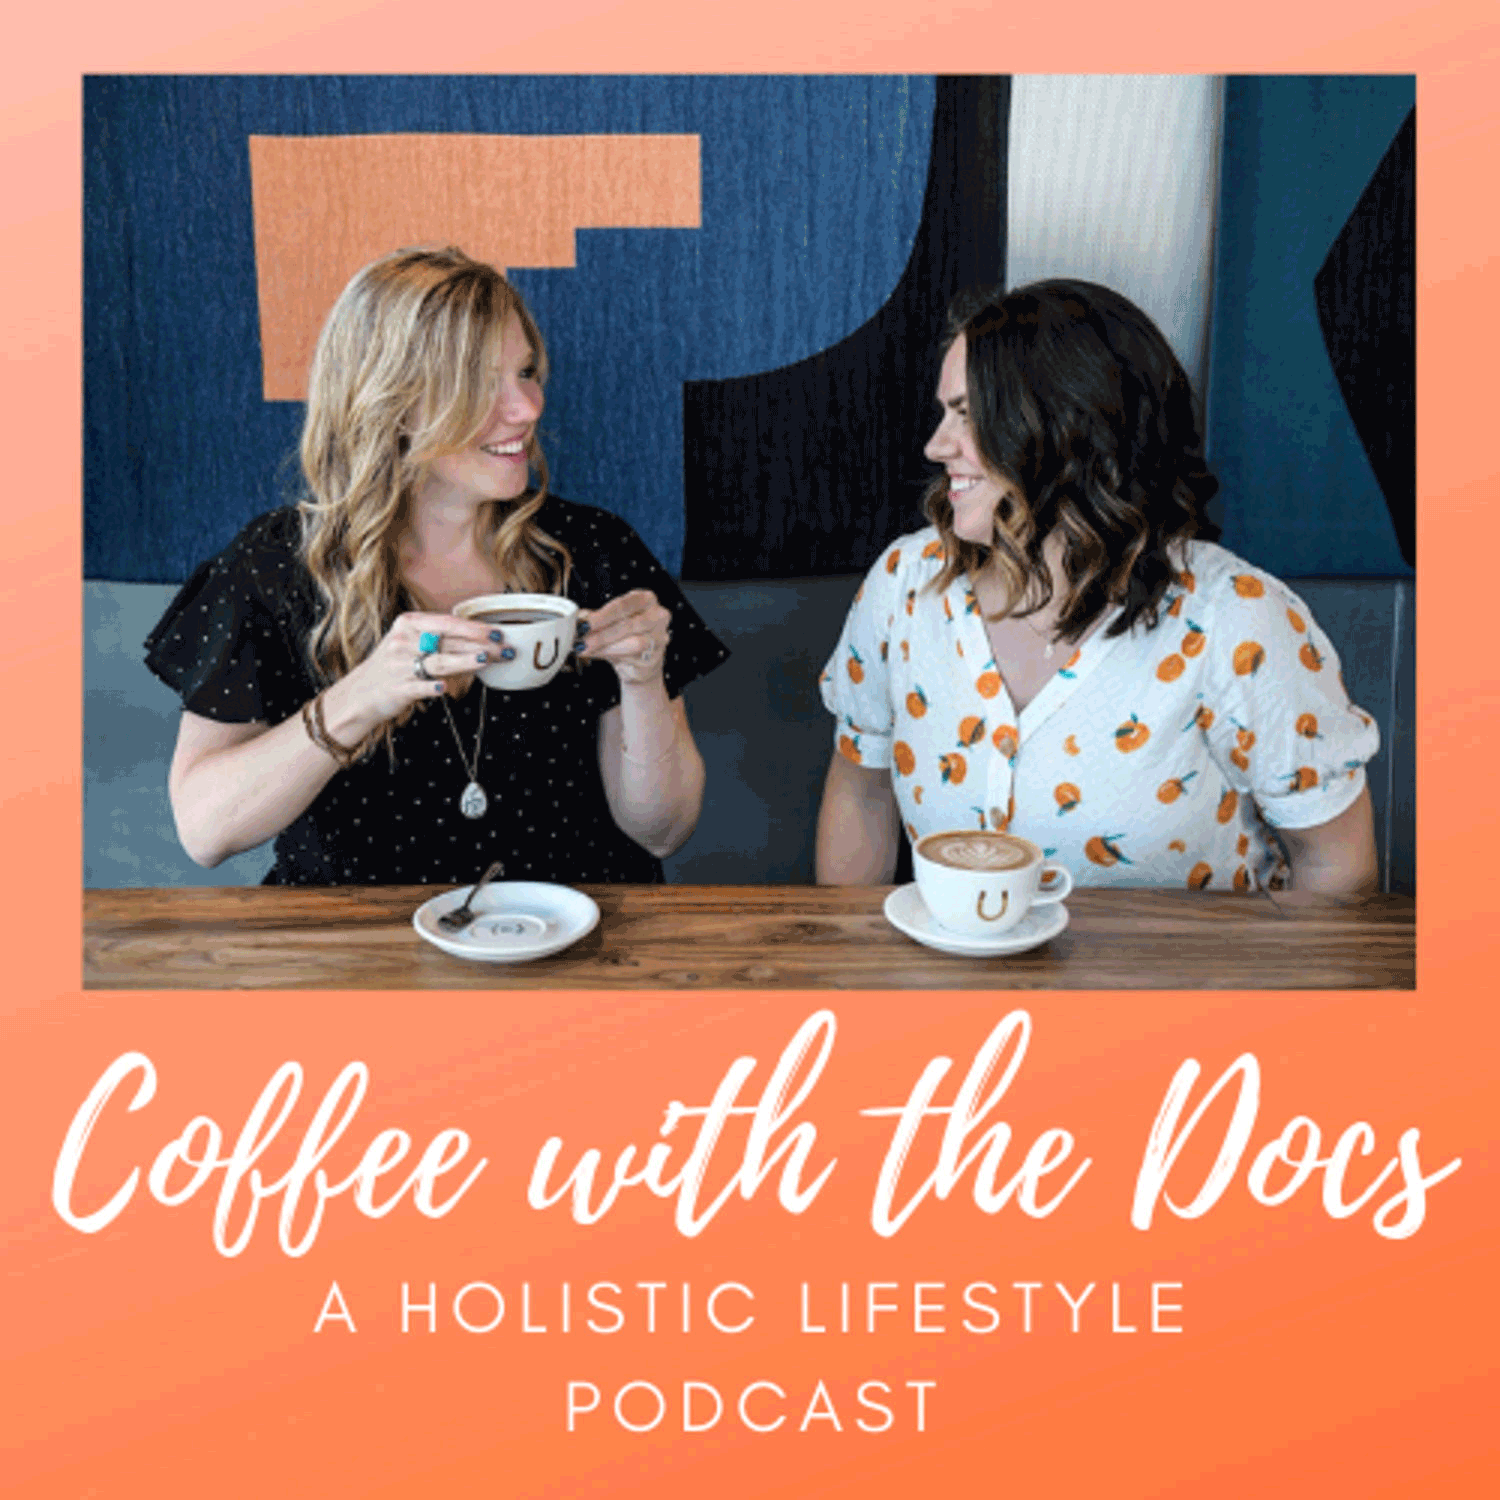 Dr. Abby and I are over the moon about our podcast. We are a lifestyle that seeks to provide holistic solutions for every day life. We bring elite information and brilliant experts to help you thrive!   If you have sponsorship requests or topic suggestions please contact coffeewiththedocs@gmail.com